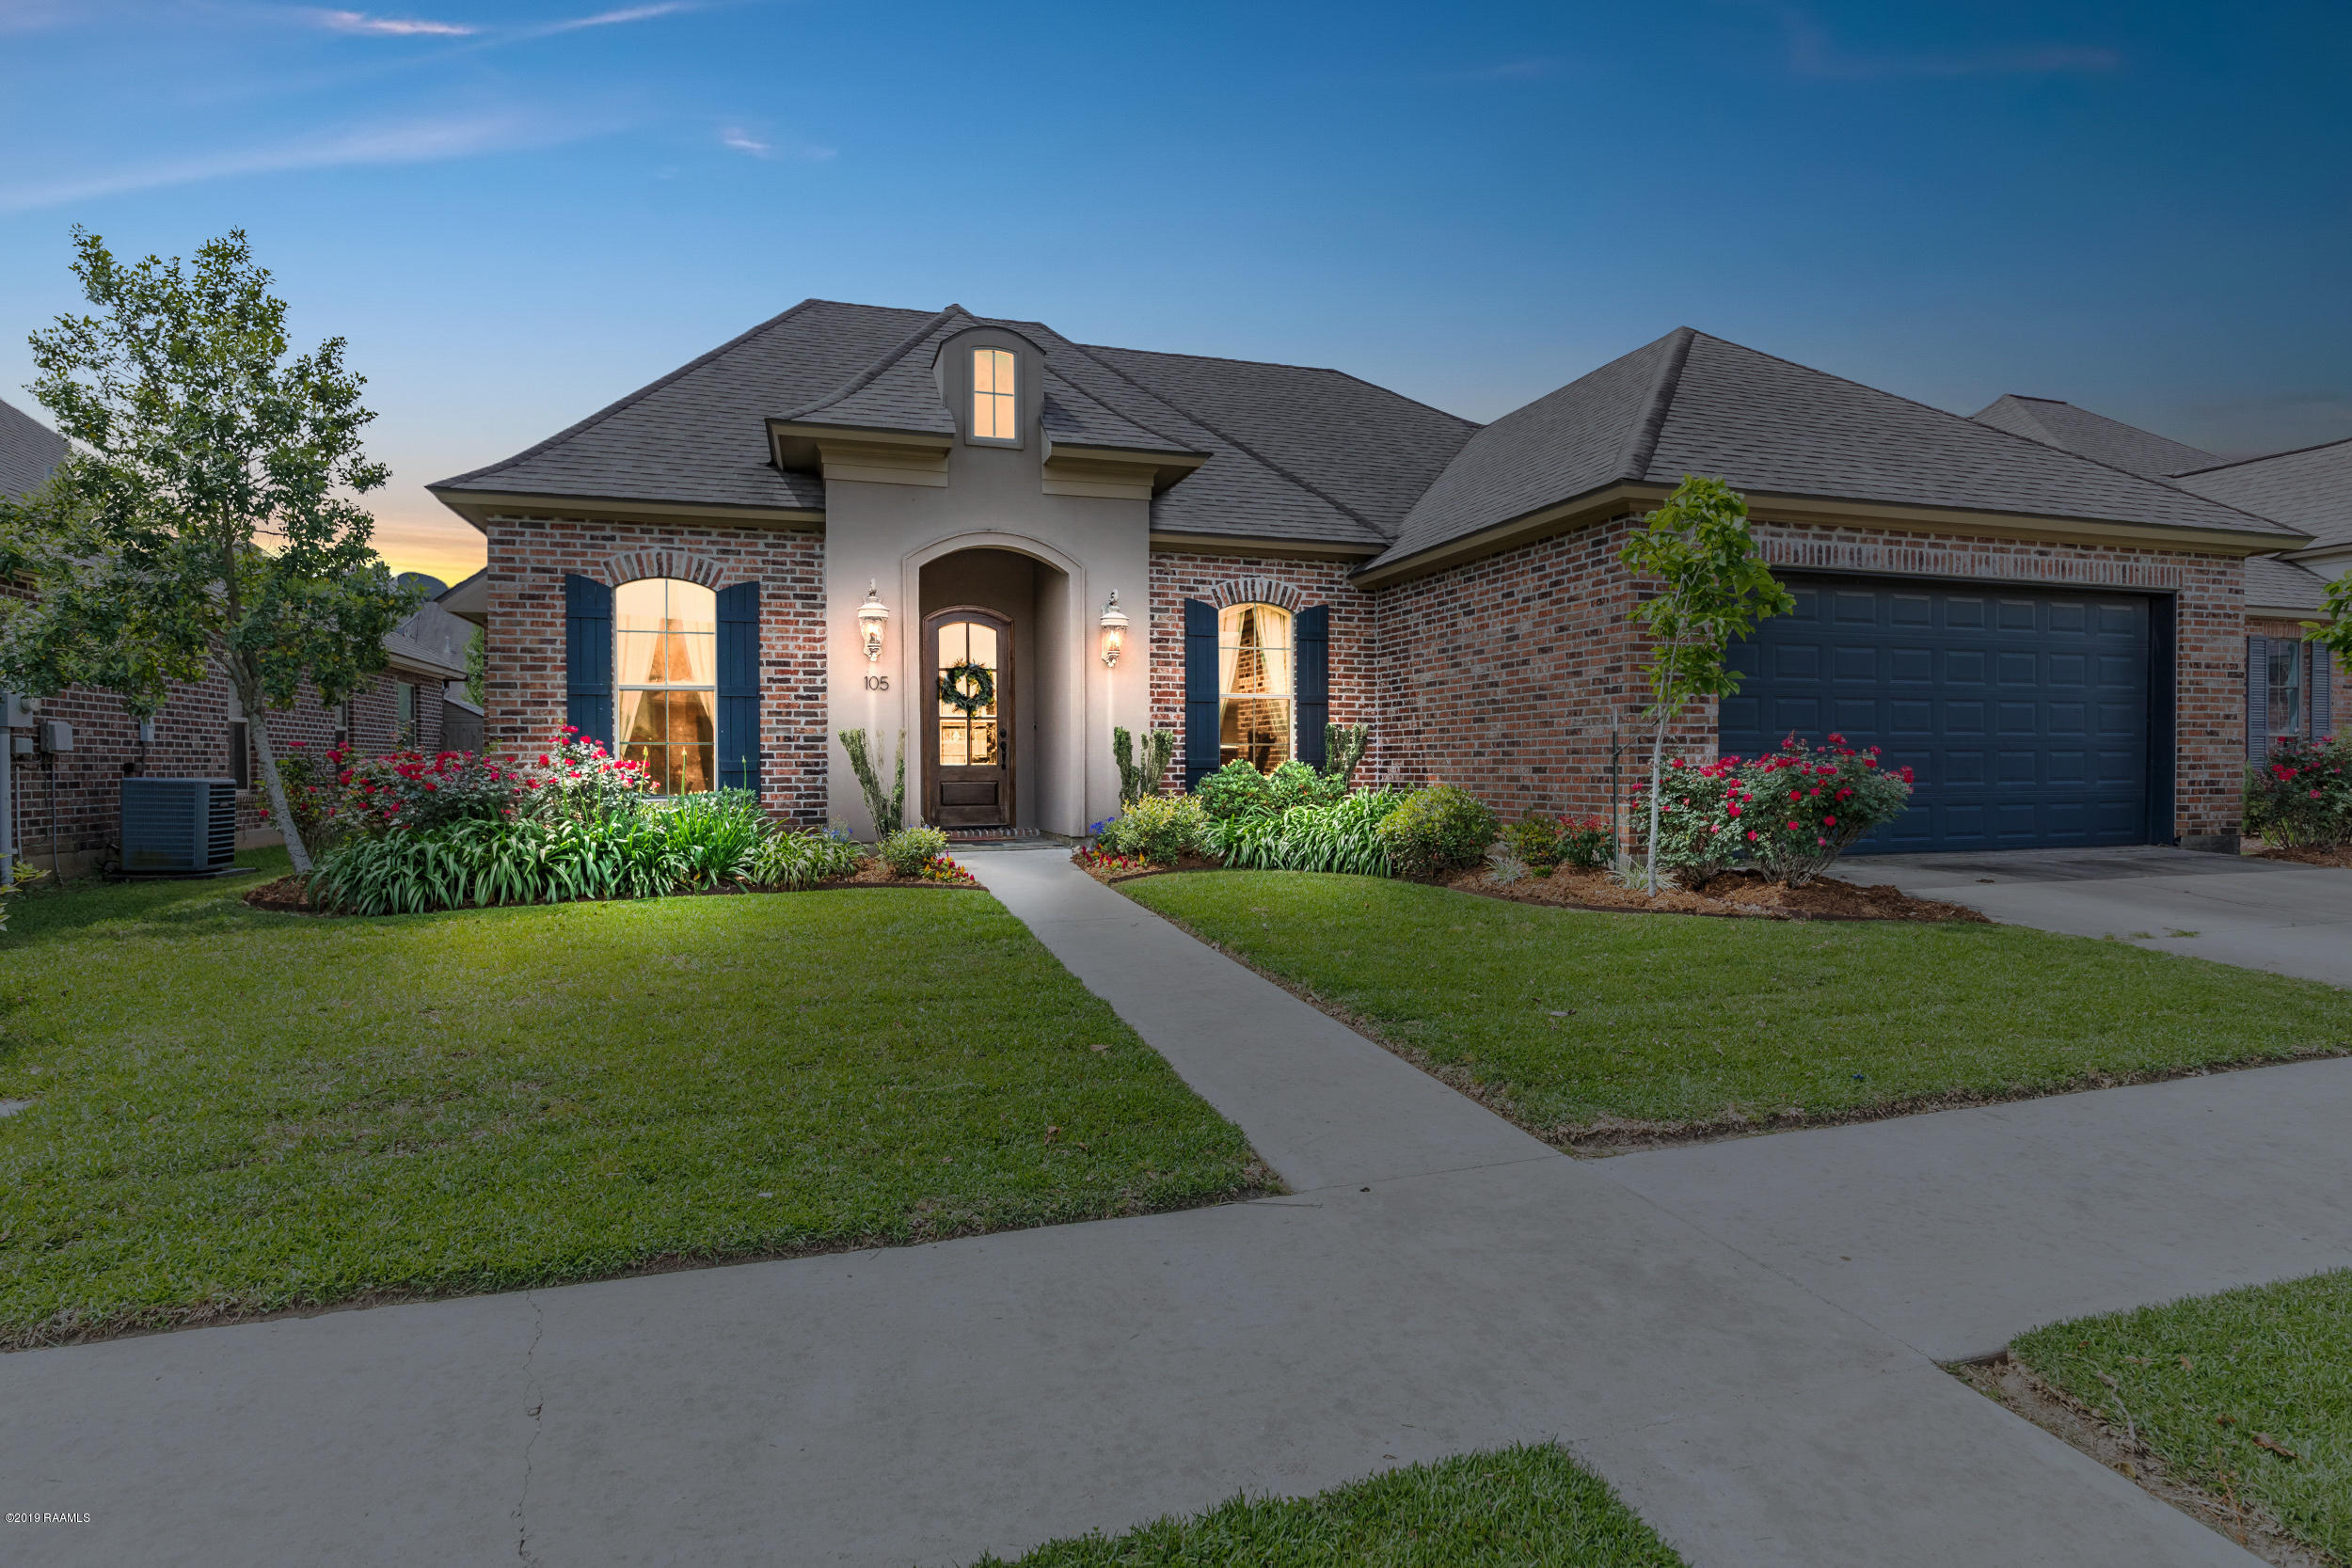 105 Spring View Drive, Youngsville, LA 70592 Photo #26